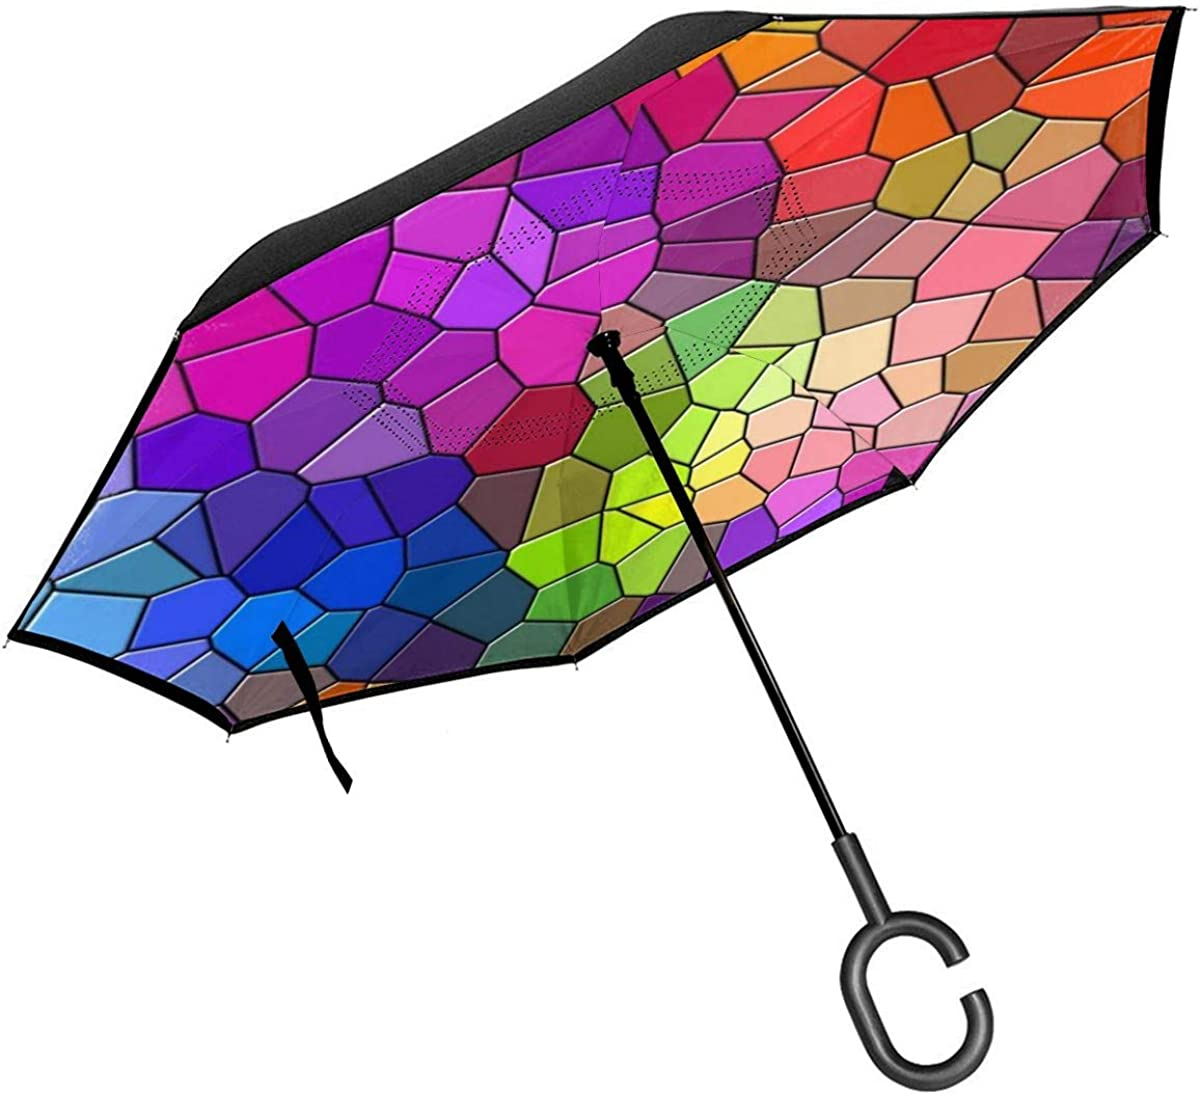 Mosaic Multicolored Texture Patterns Wallpaper Reverse Umbrella Double Layer Inverted Umbrellas For Car Rain Outdoor With C-Shaped Handle Customized